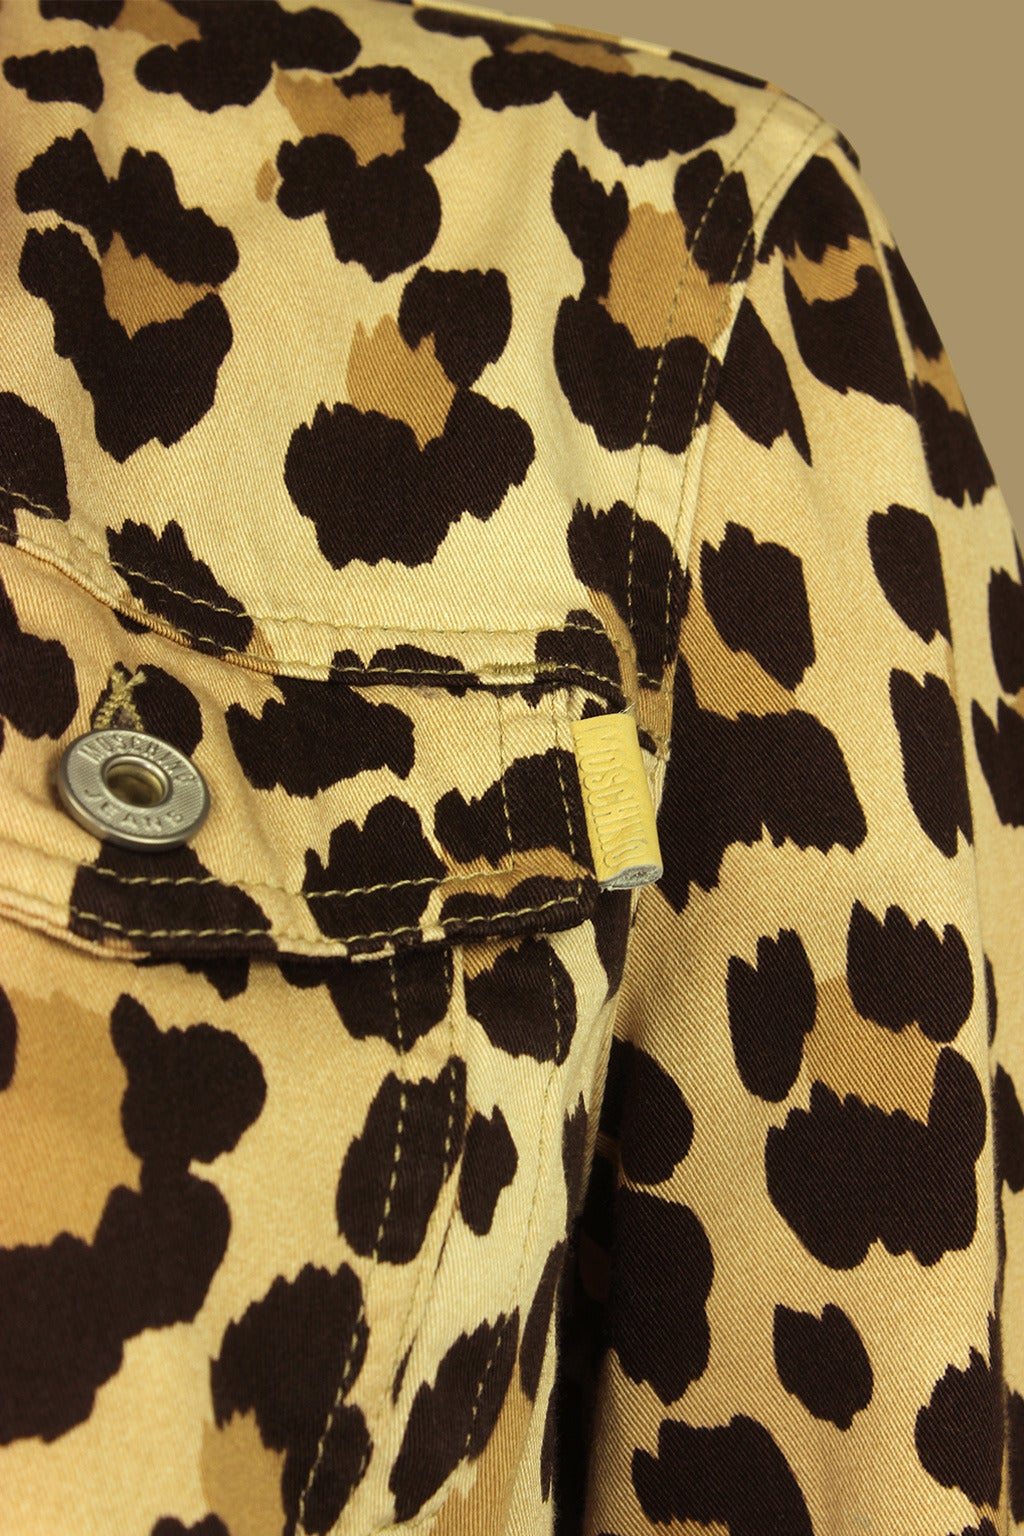 Moschino 1990s Cheetah Print Cropped Western Style Jacket 4